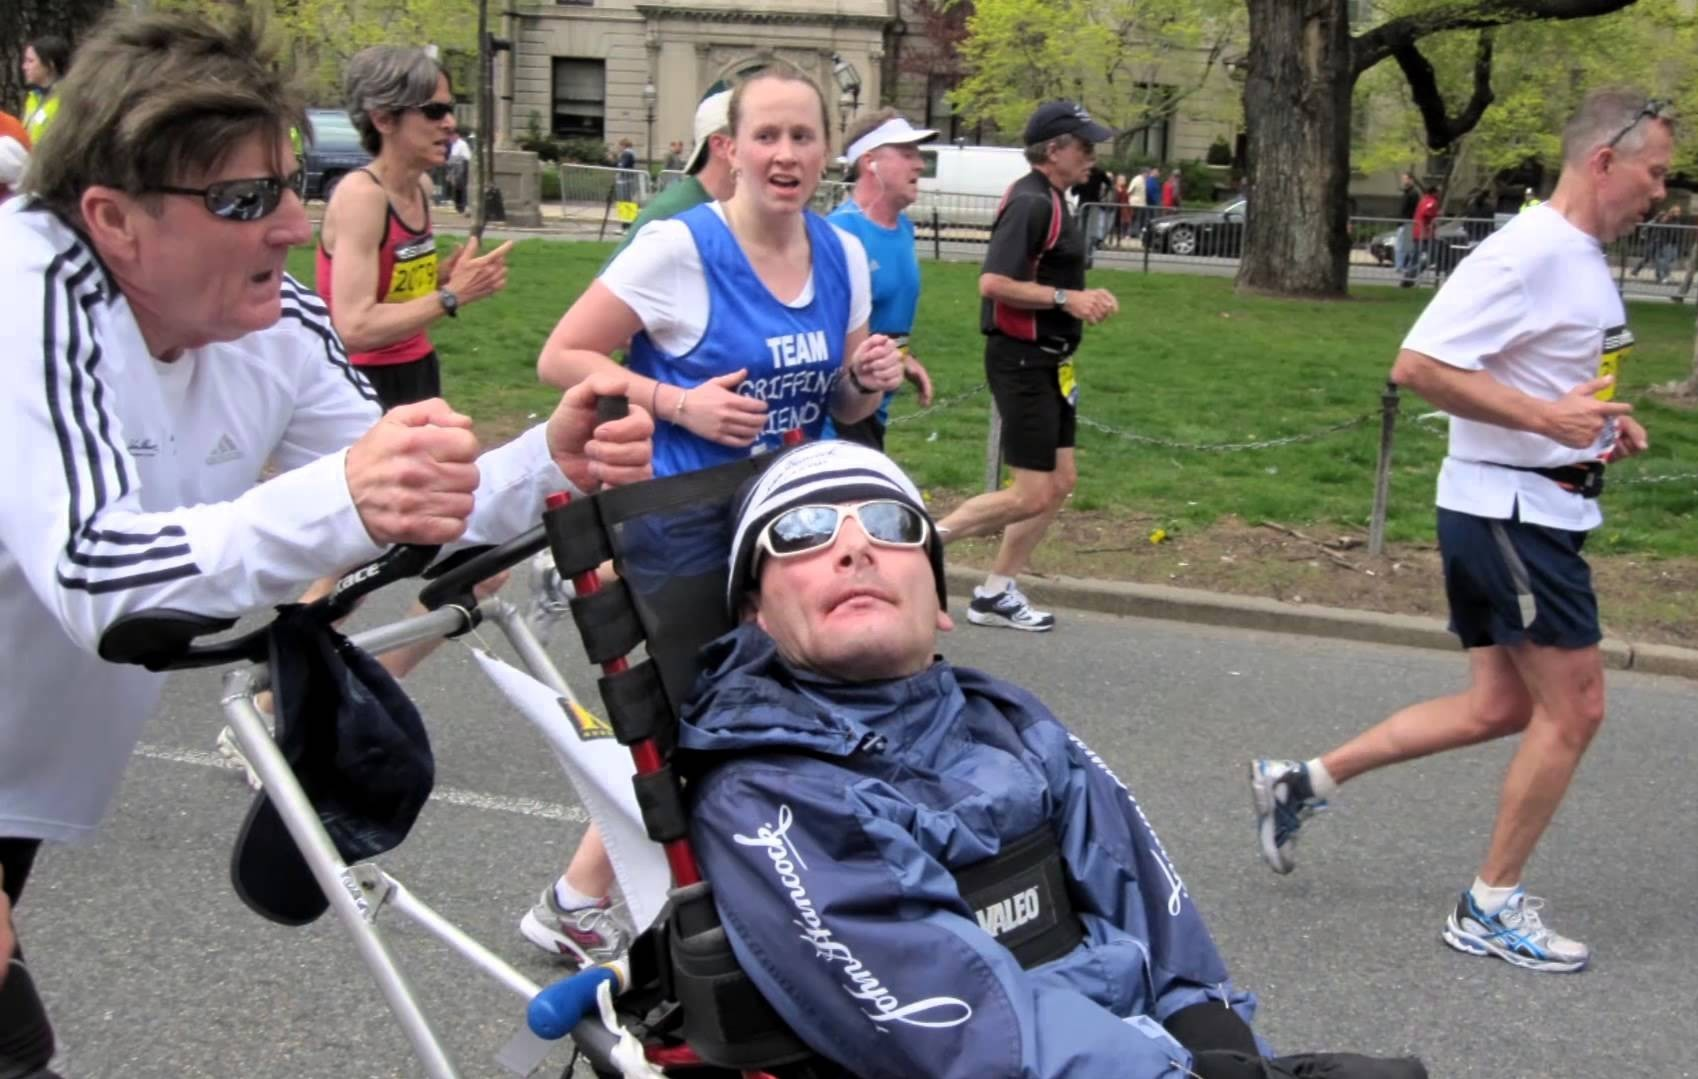 Dick and rick hoyt race